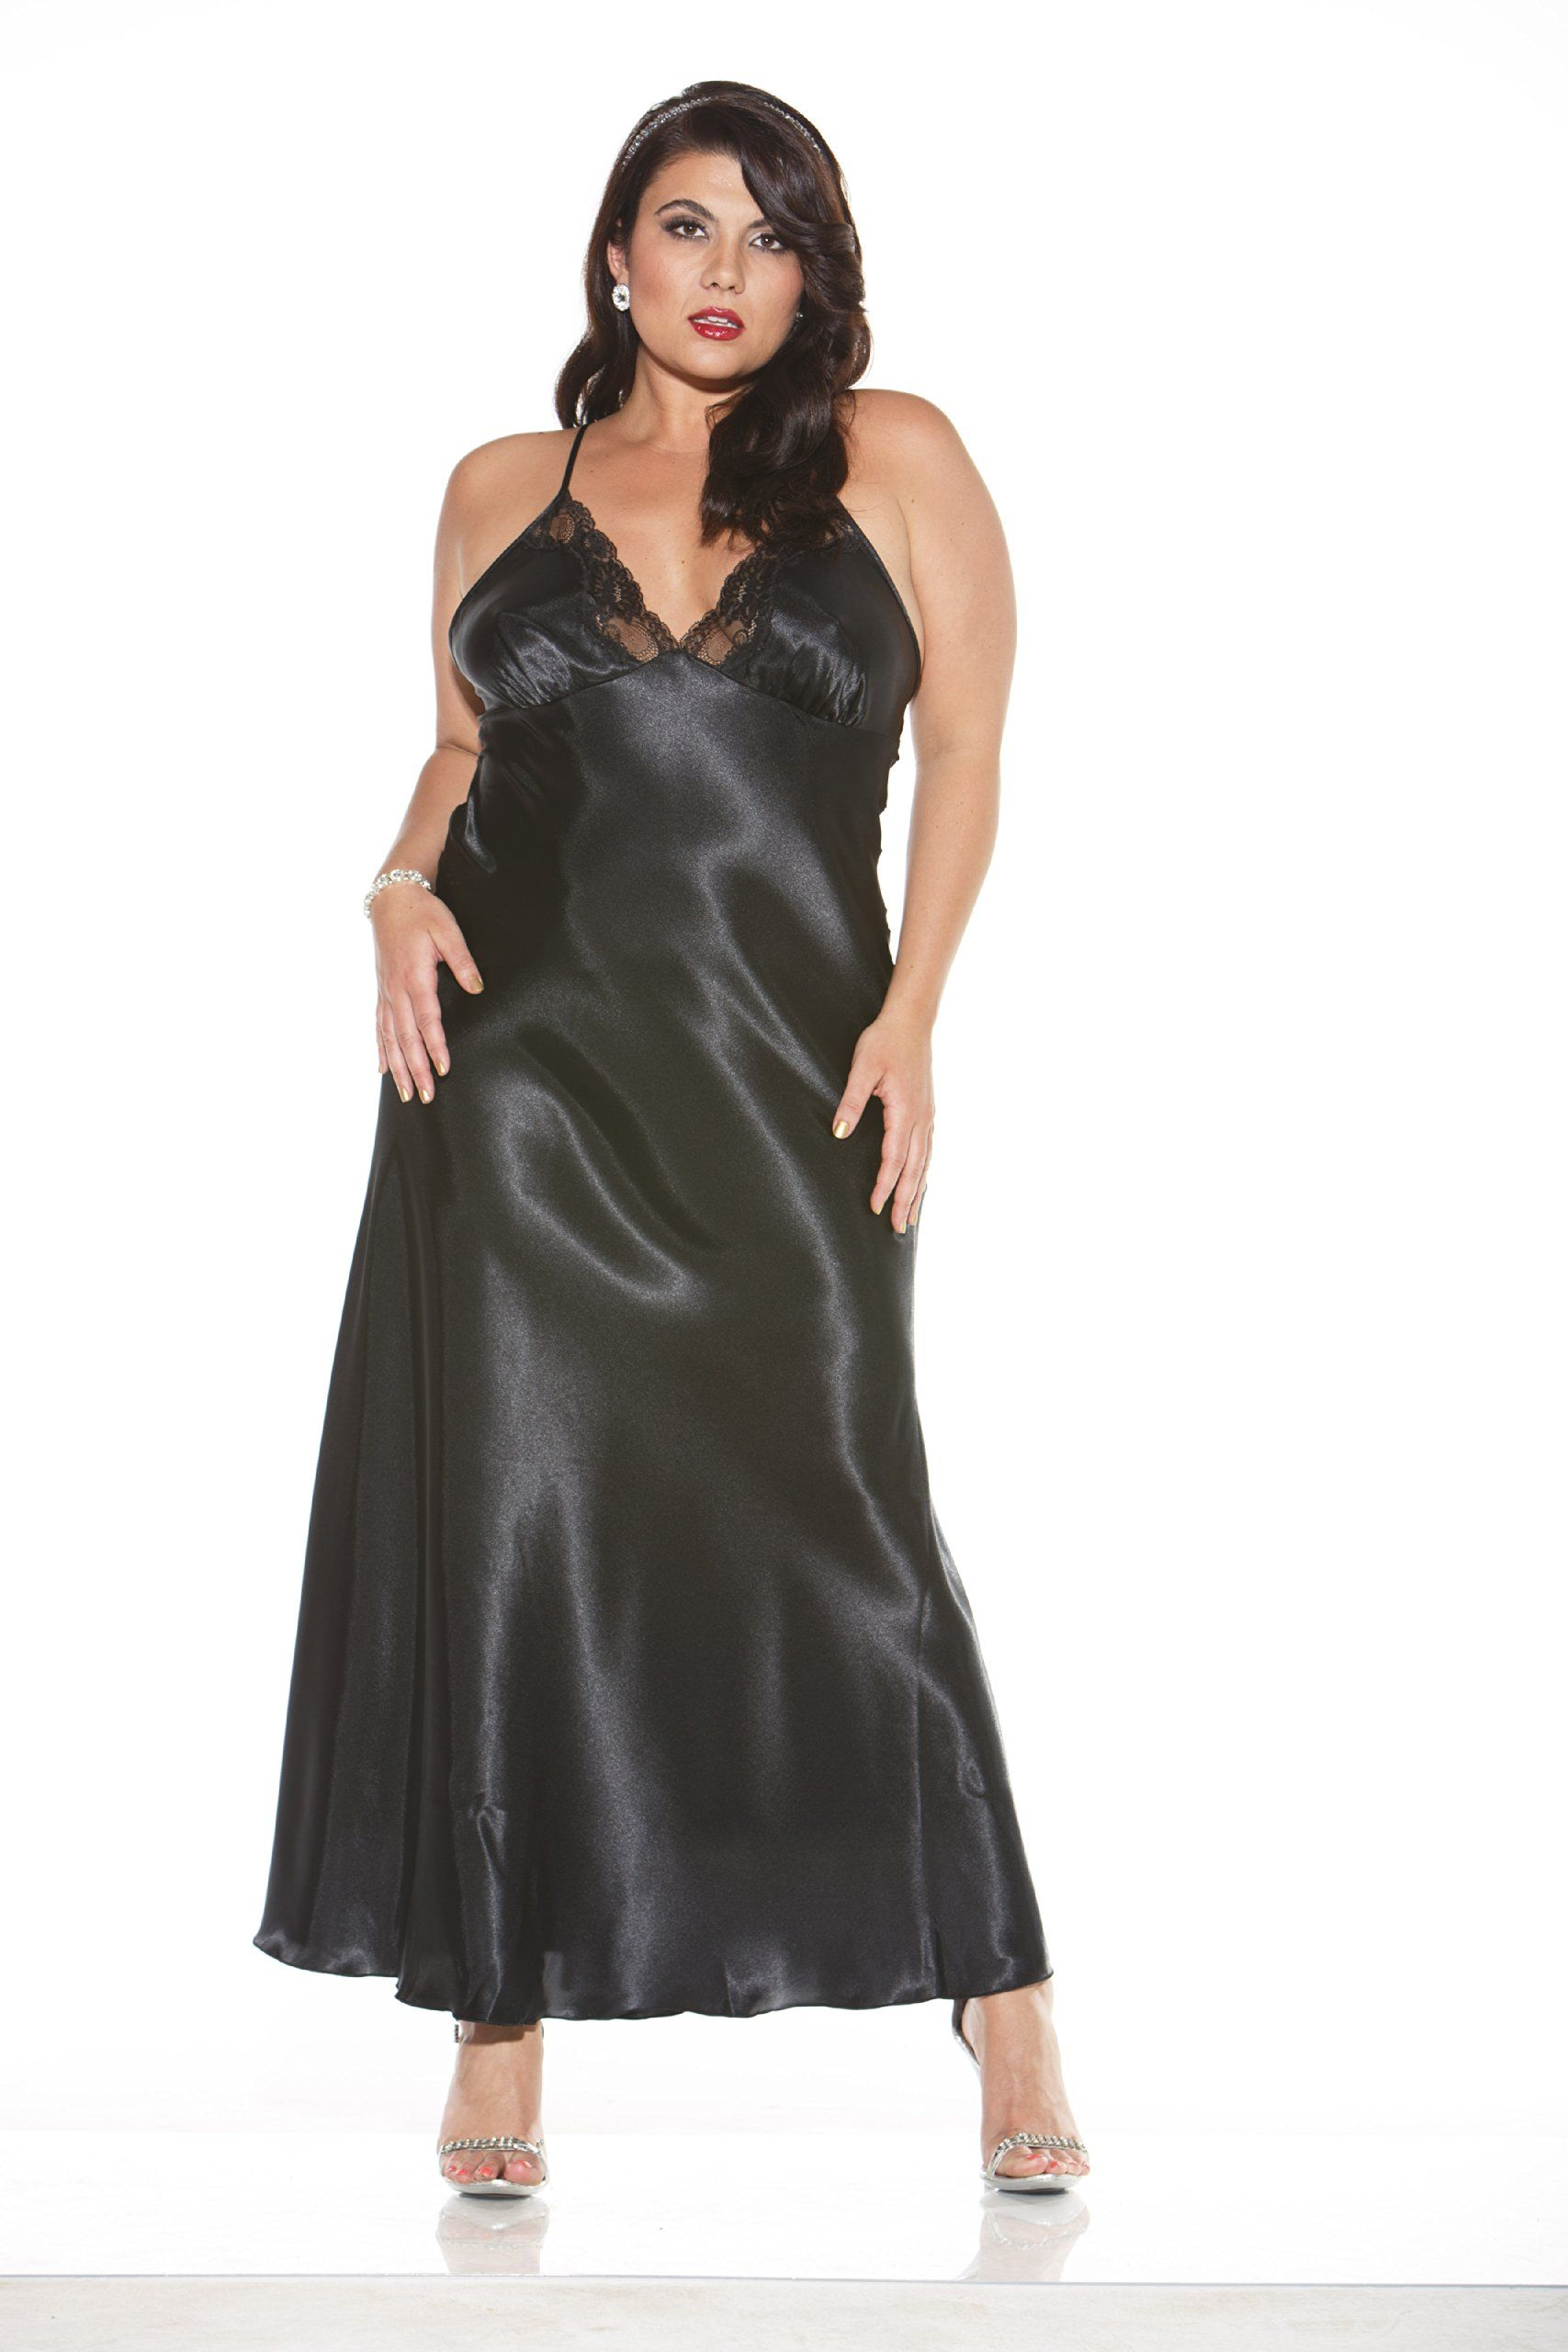 Shirley of Hollywood Womens Charmeuse and Lace Long Gown